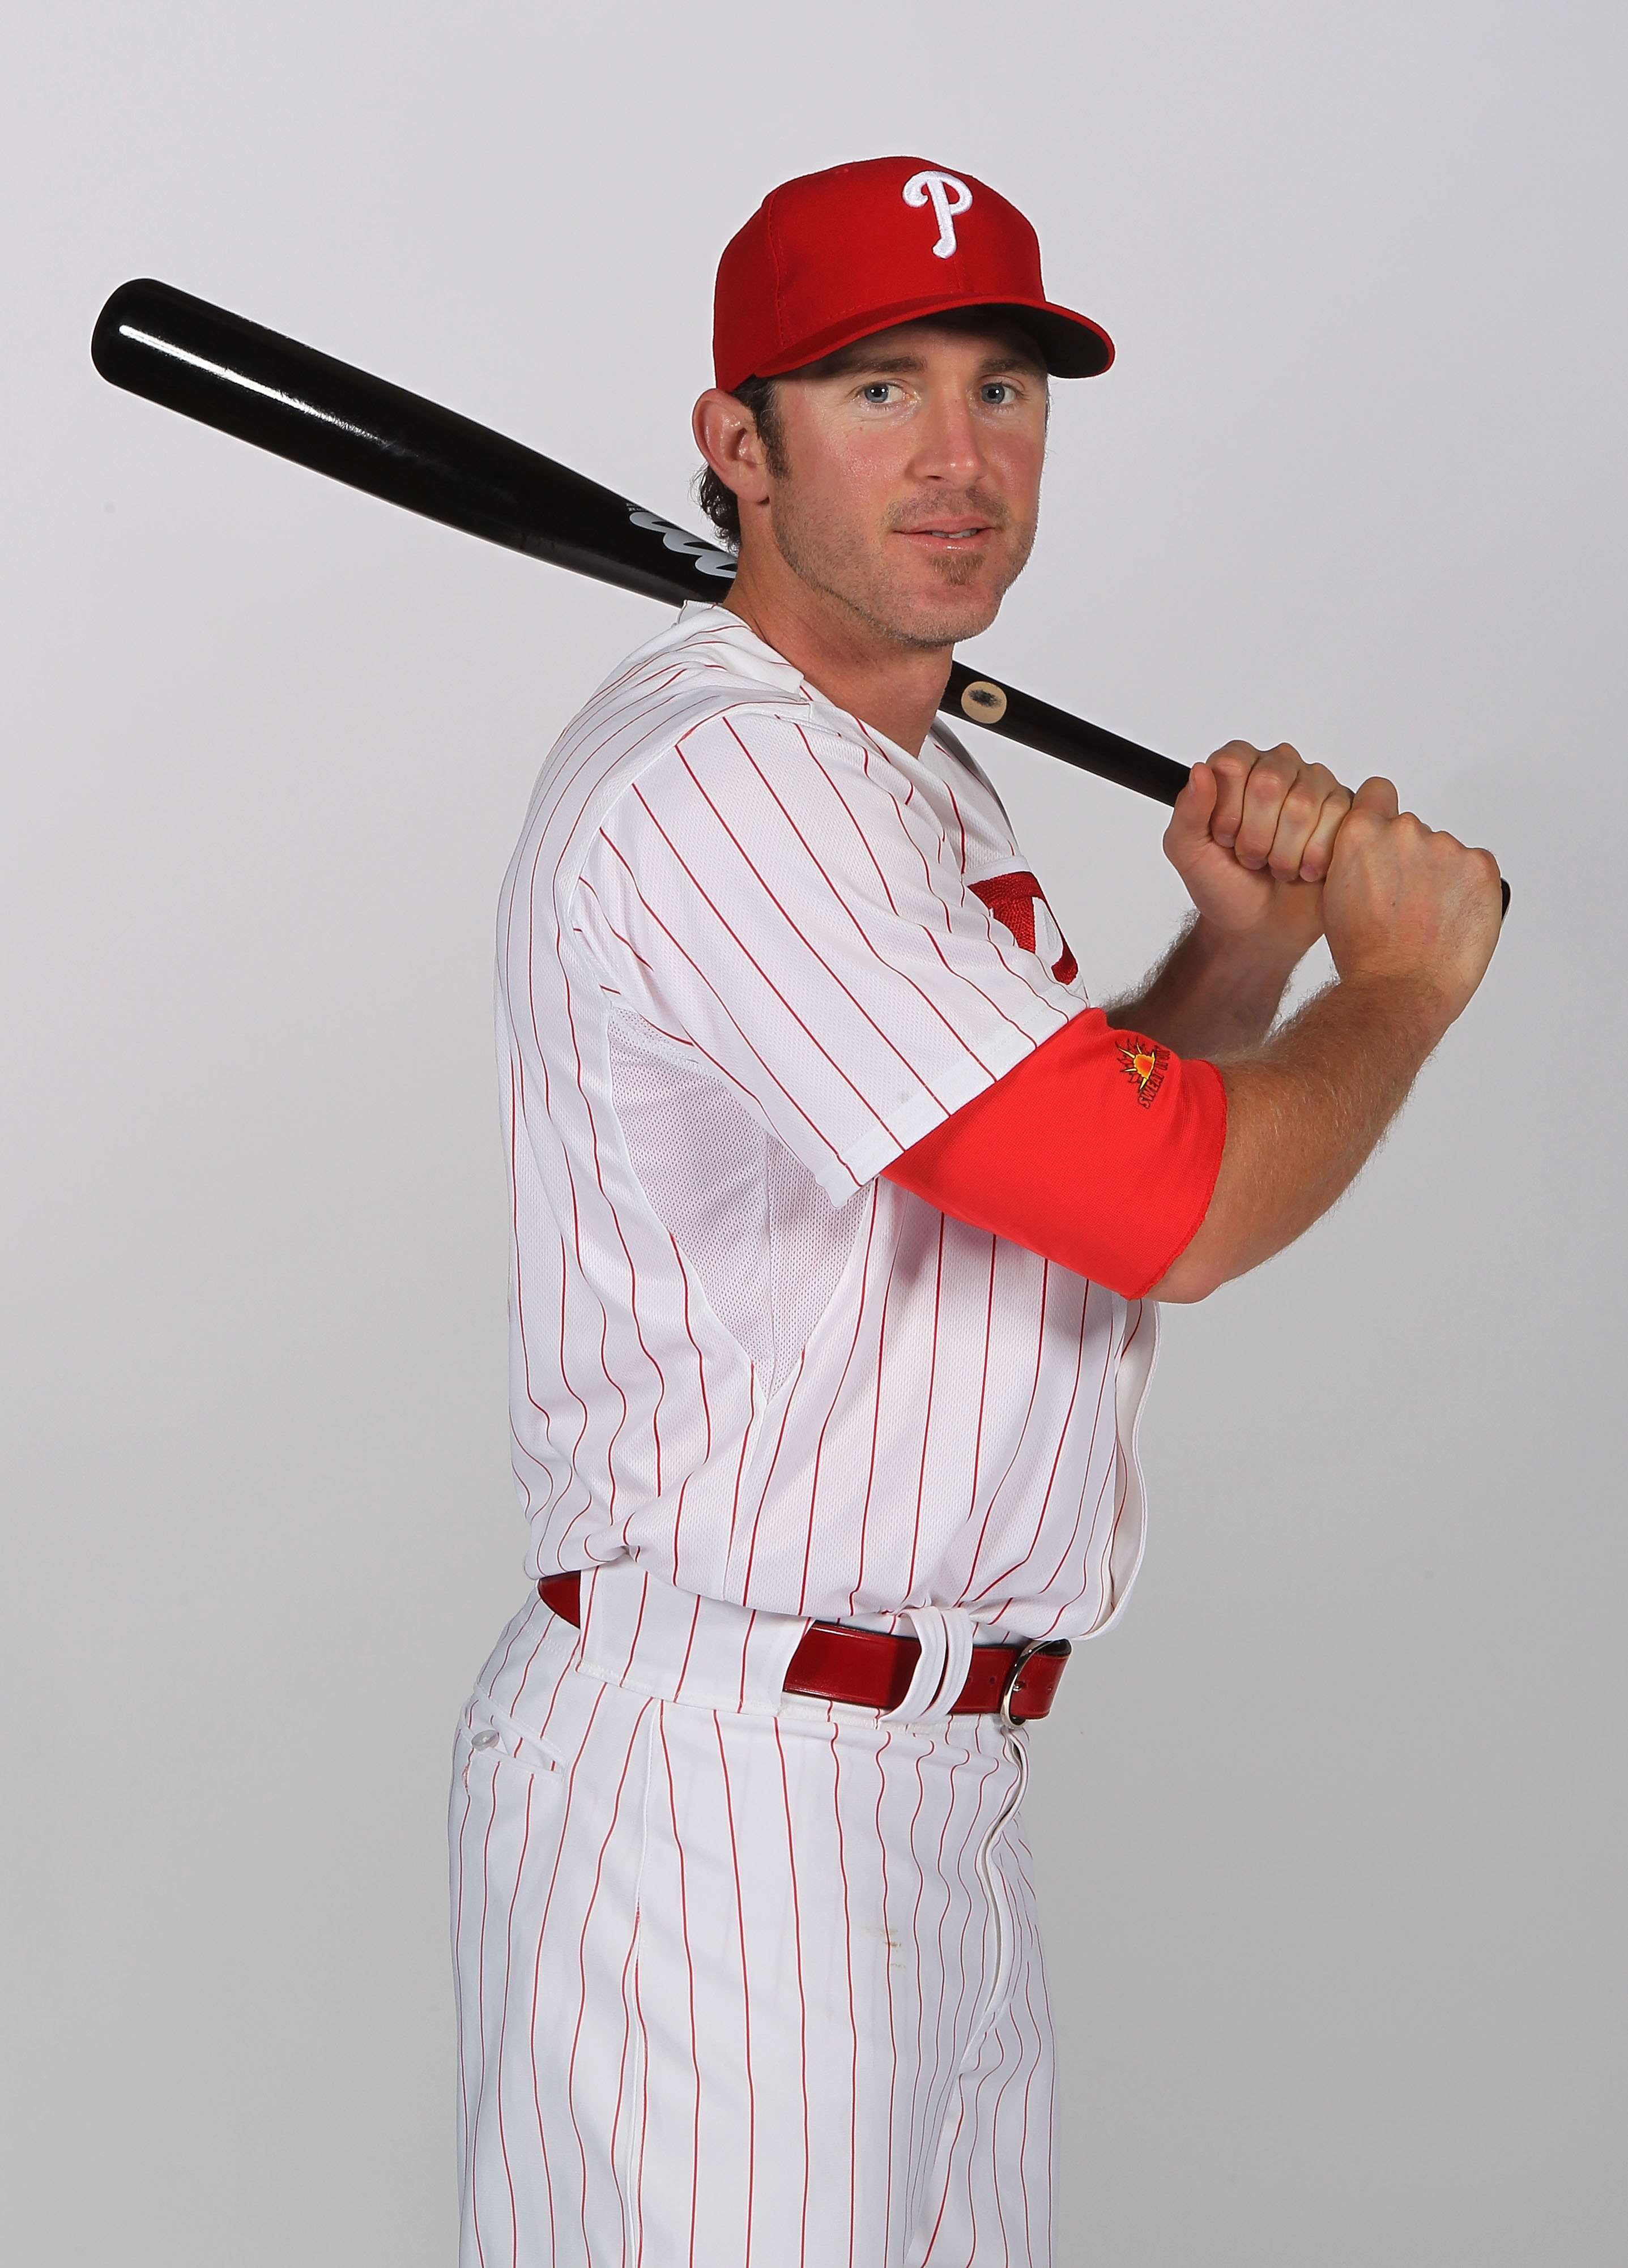 CLEARWATER, FL - FEBRUARY 22:  Chase Utley #26 of the Philadelphia Phillies poses for a photo during Spring Training Media Photo Day at Bright House Networks Field on February 22, 2011 in Clearwater, Florida.  (Photo by Nick Laham/Getty Images)